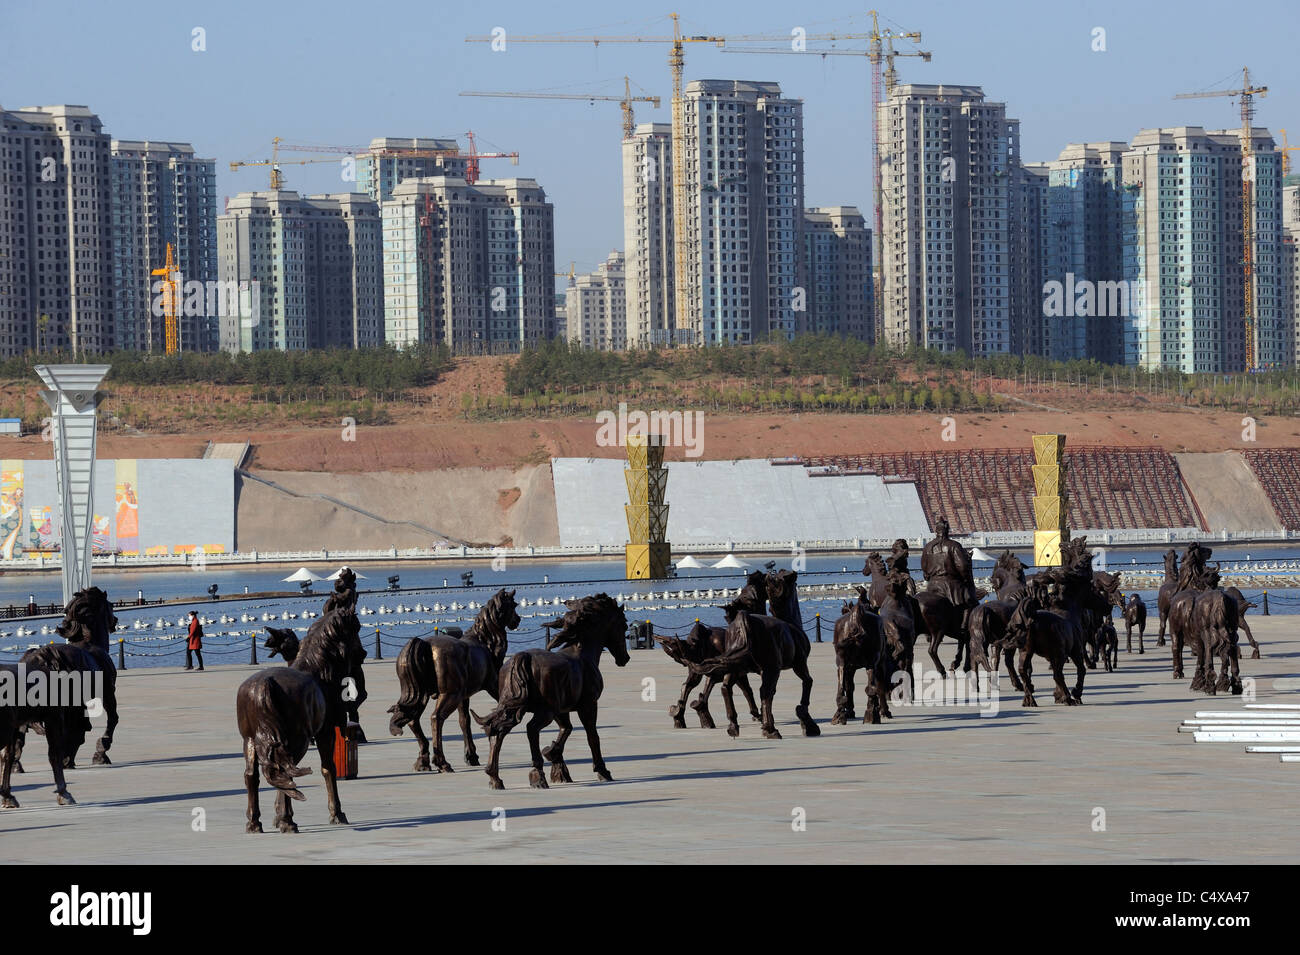 One hundred bronze horses near the artificial river in Kangbashi, Ordos, Inner Mongolia, China.13-May-2011 - Stock Image